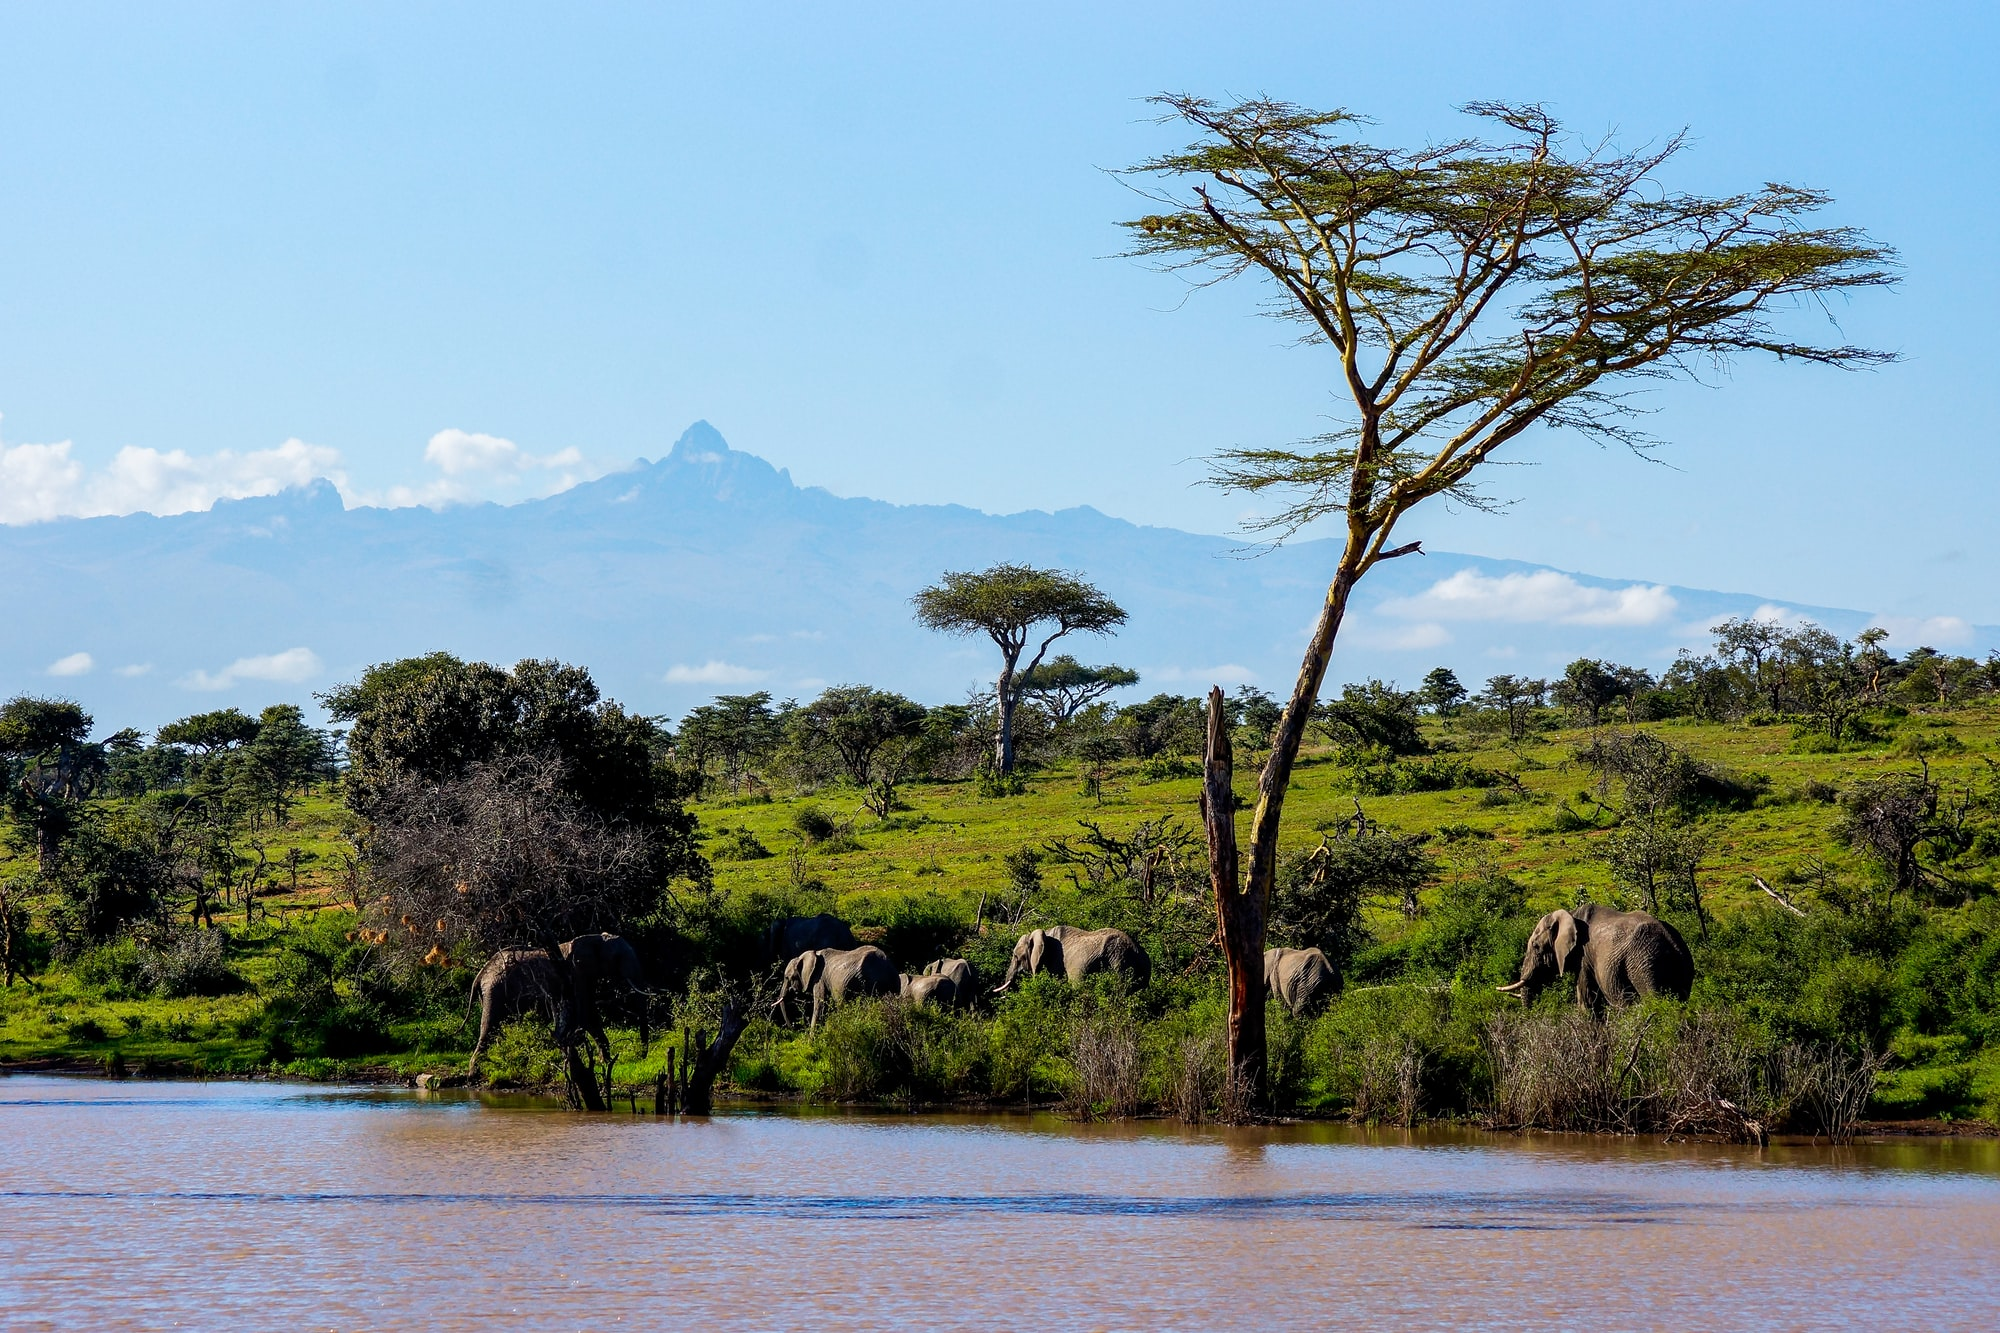 A herd of Elephants coming to drink. In the background is the mighty Mount Kenya.